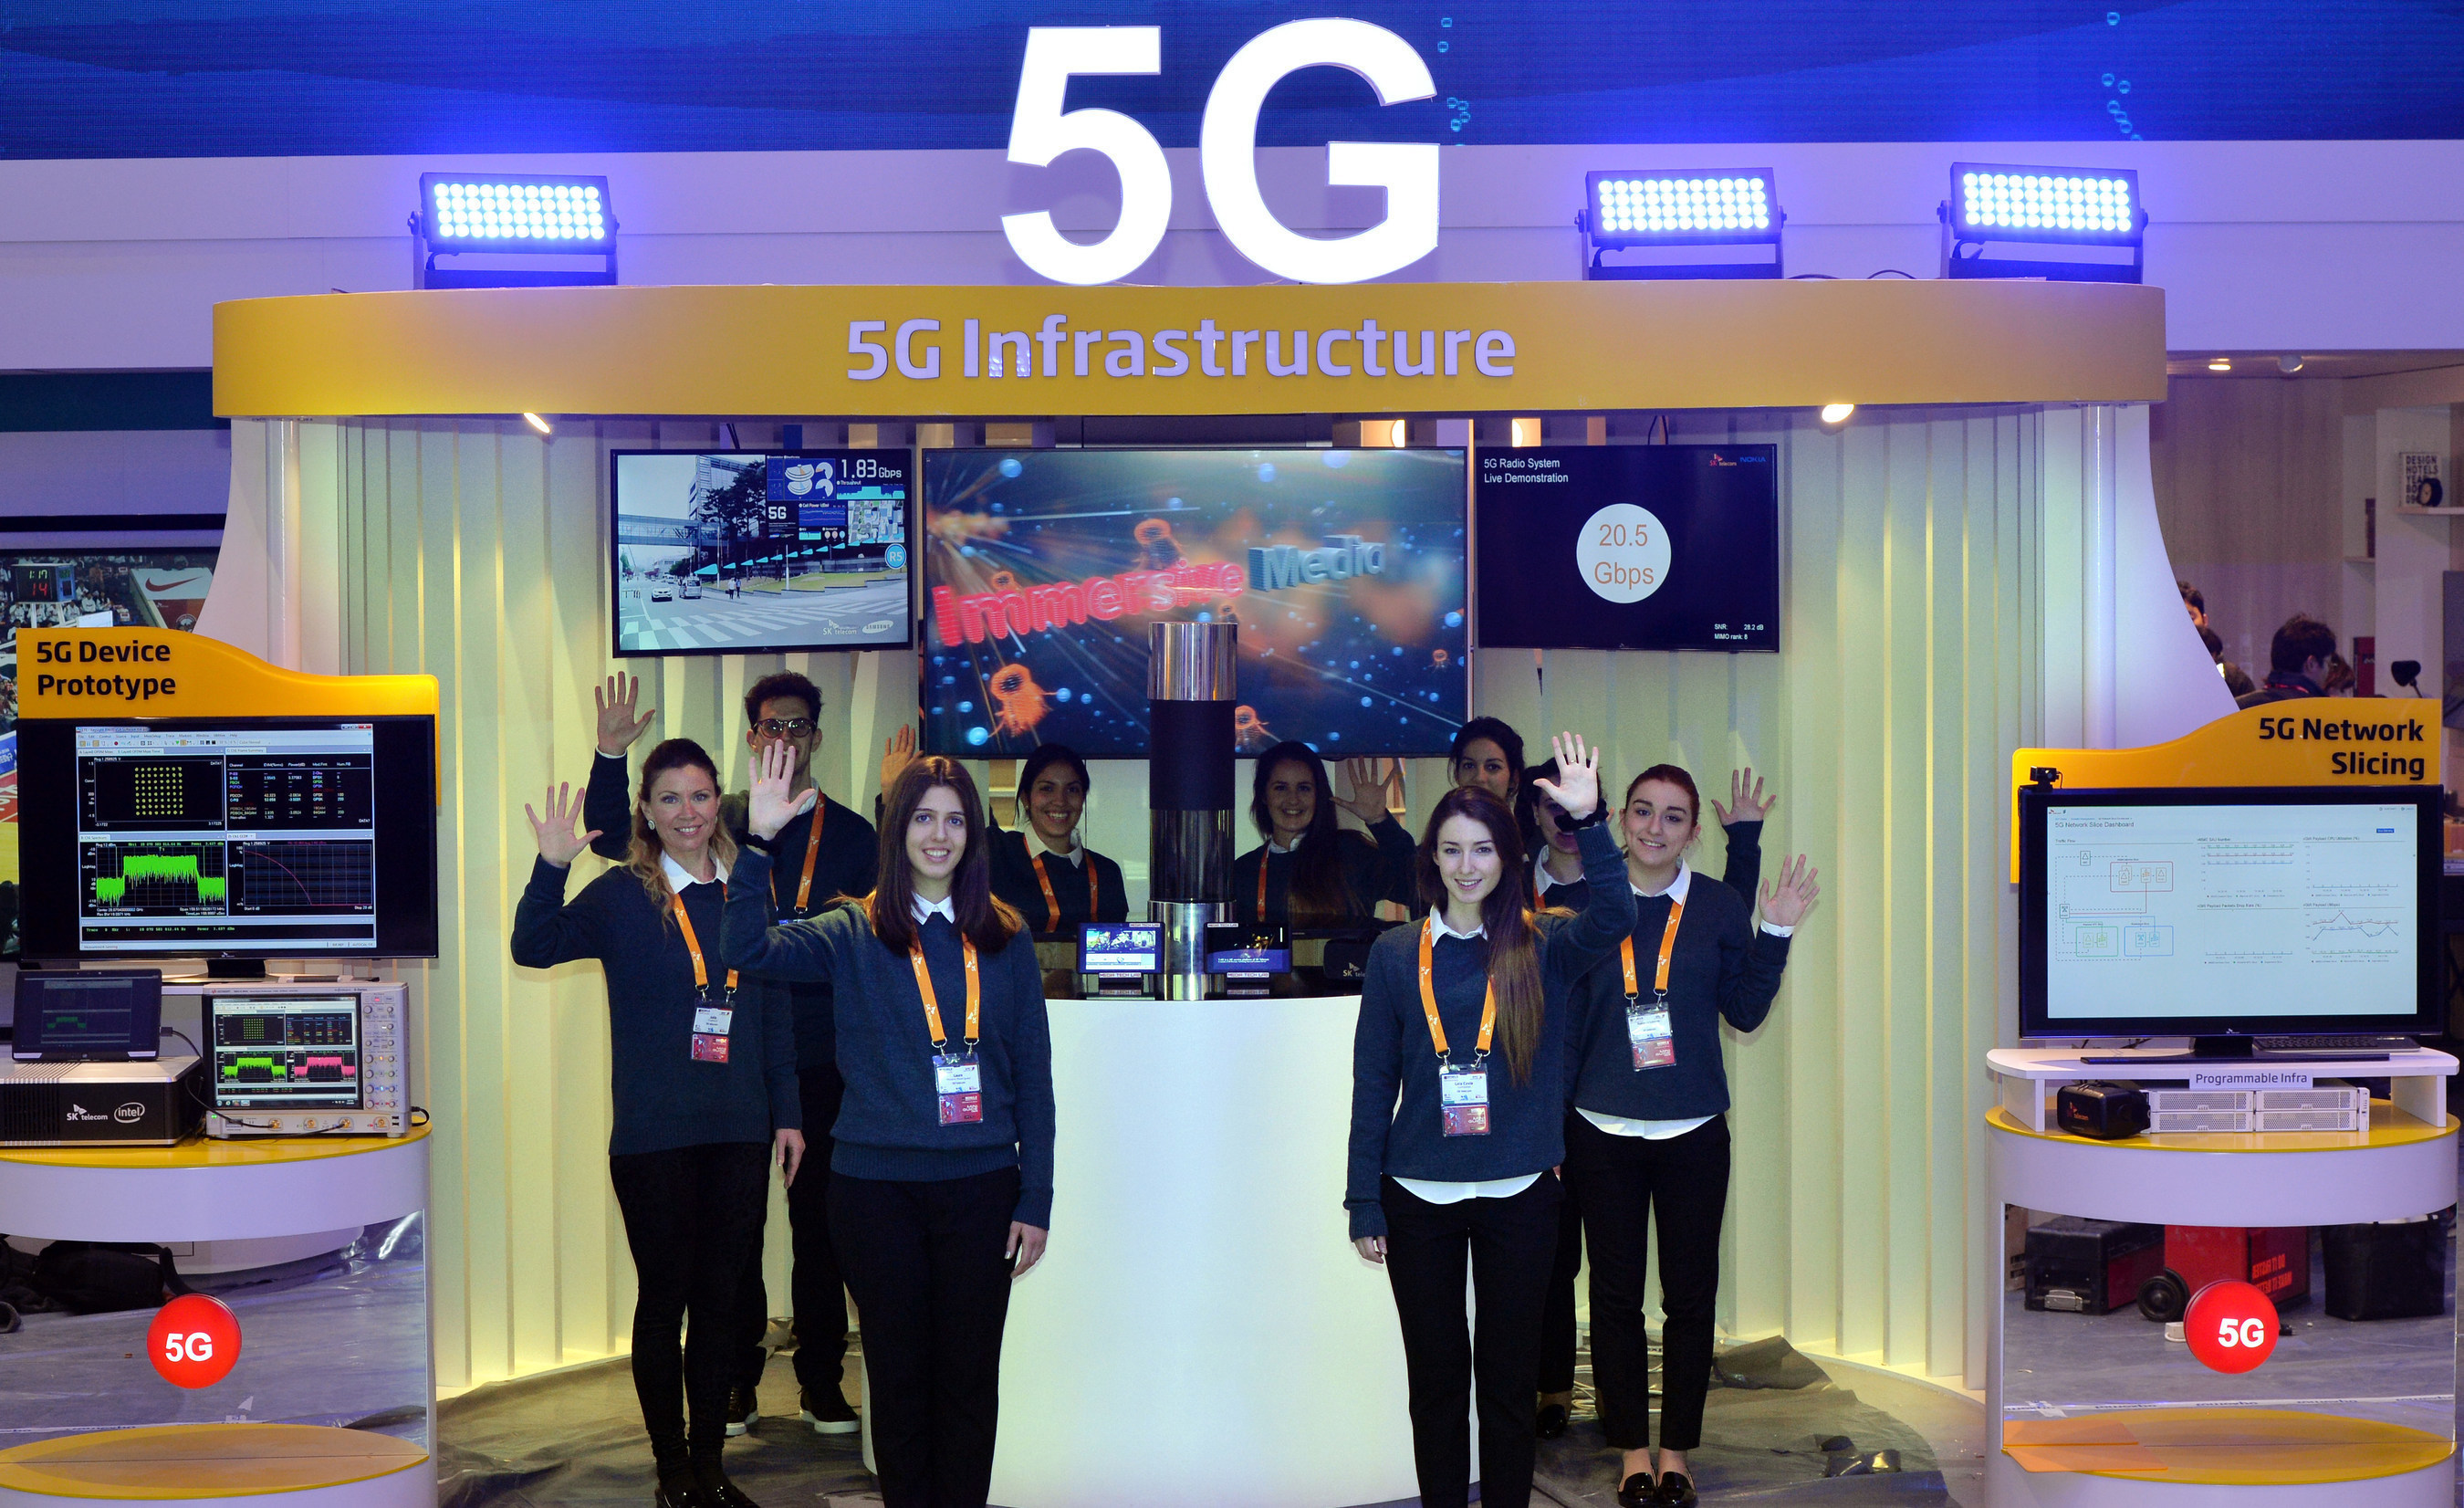 SK Telecom demonstrates its technological capability for building an end-to-end 5G system at MWC